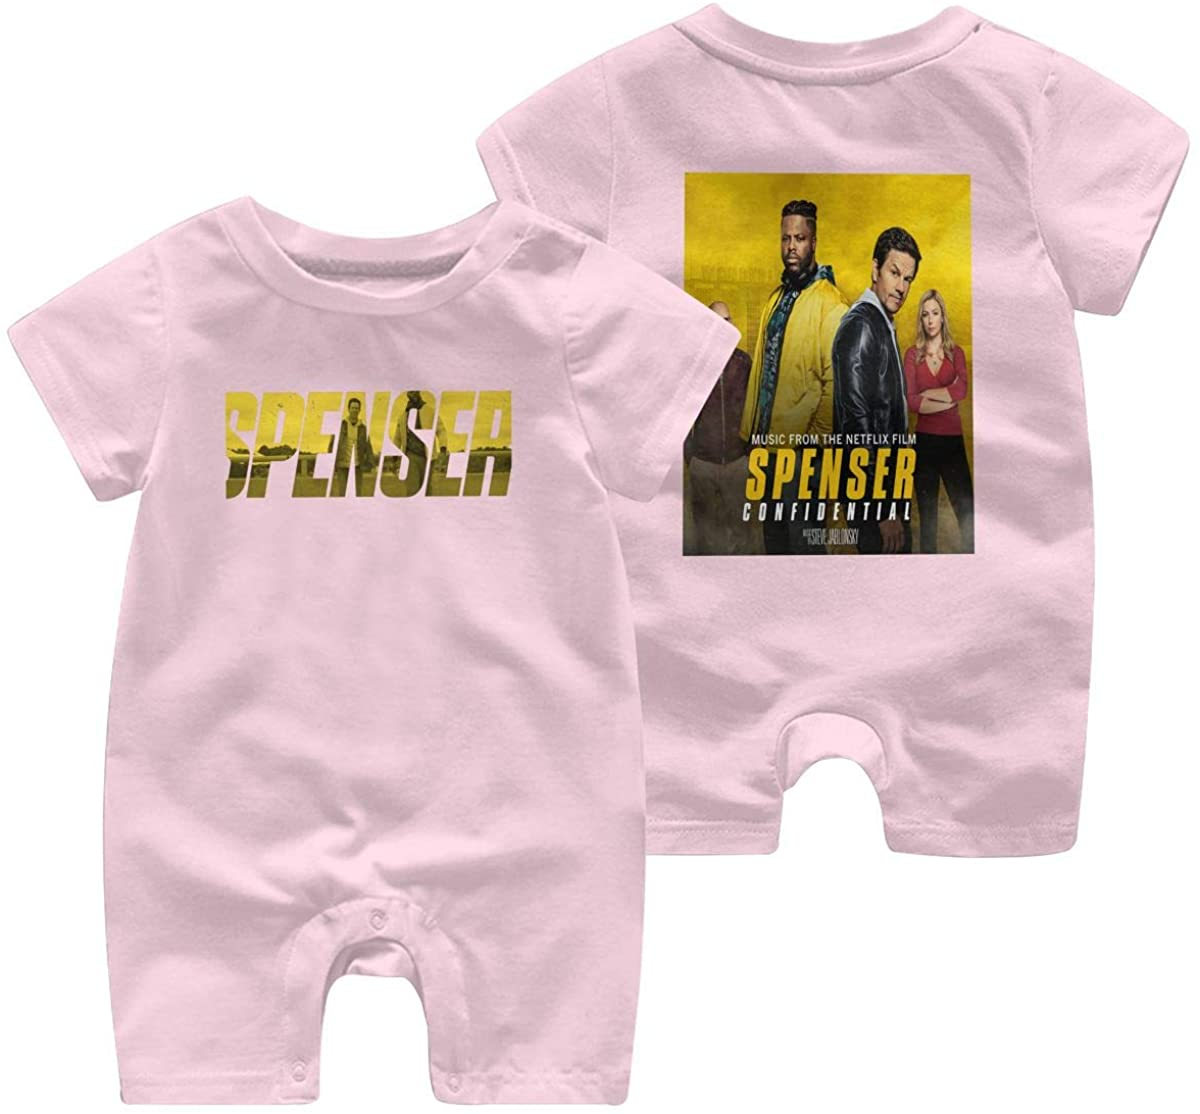 Adsfghre Spenser Confidential Baby Short Sleeve Jumpsuit Kid Baby Pajama Funny Cotton Romper